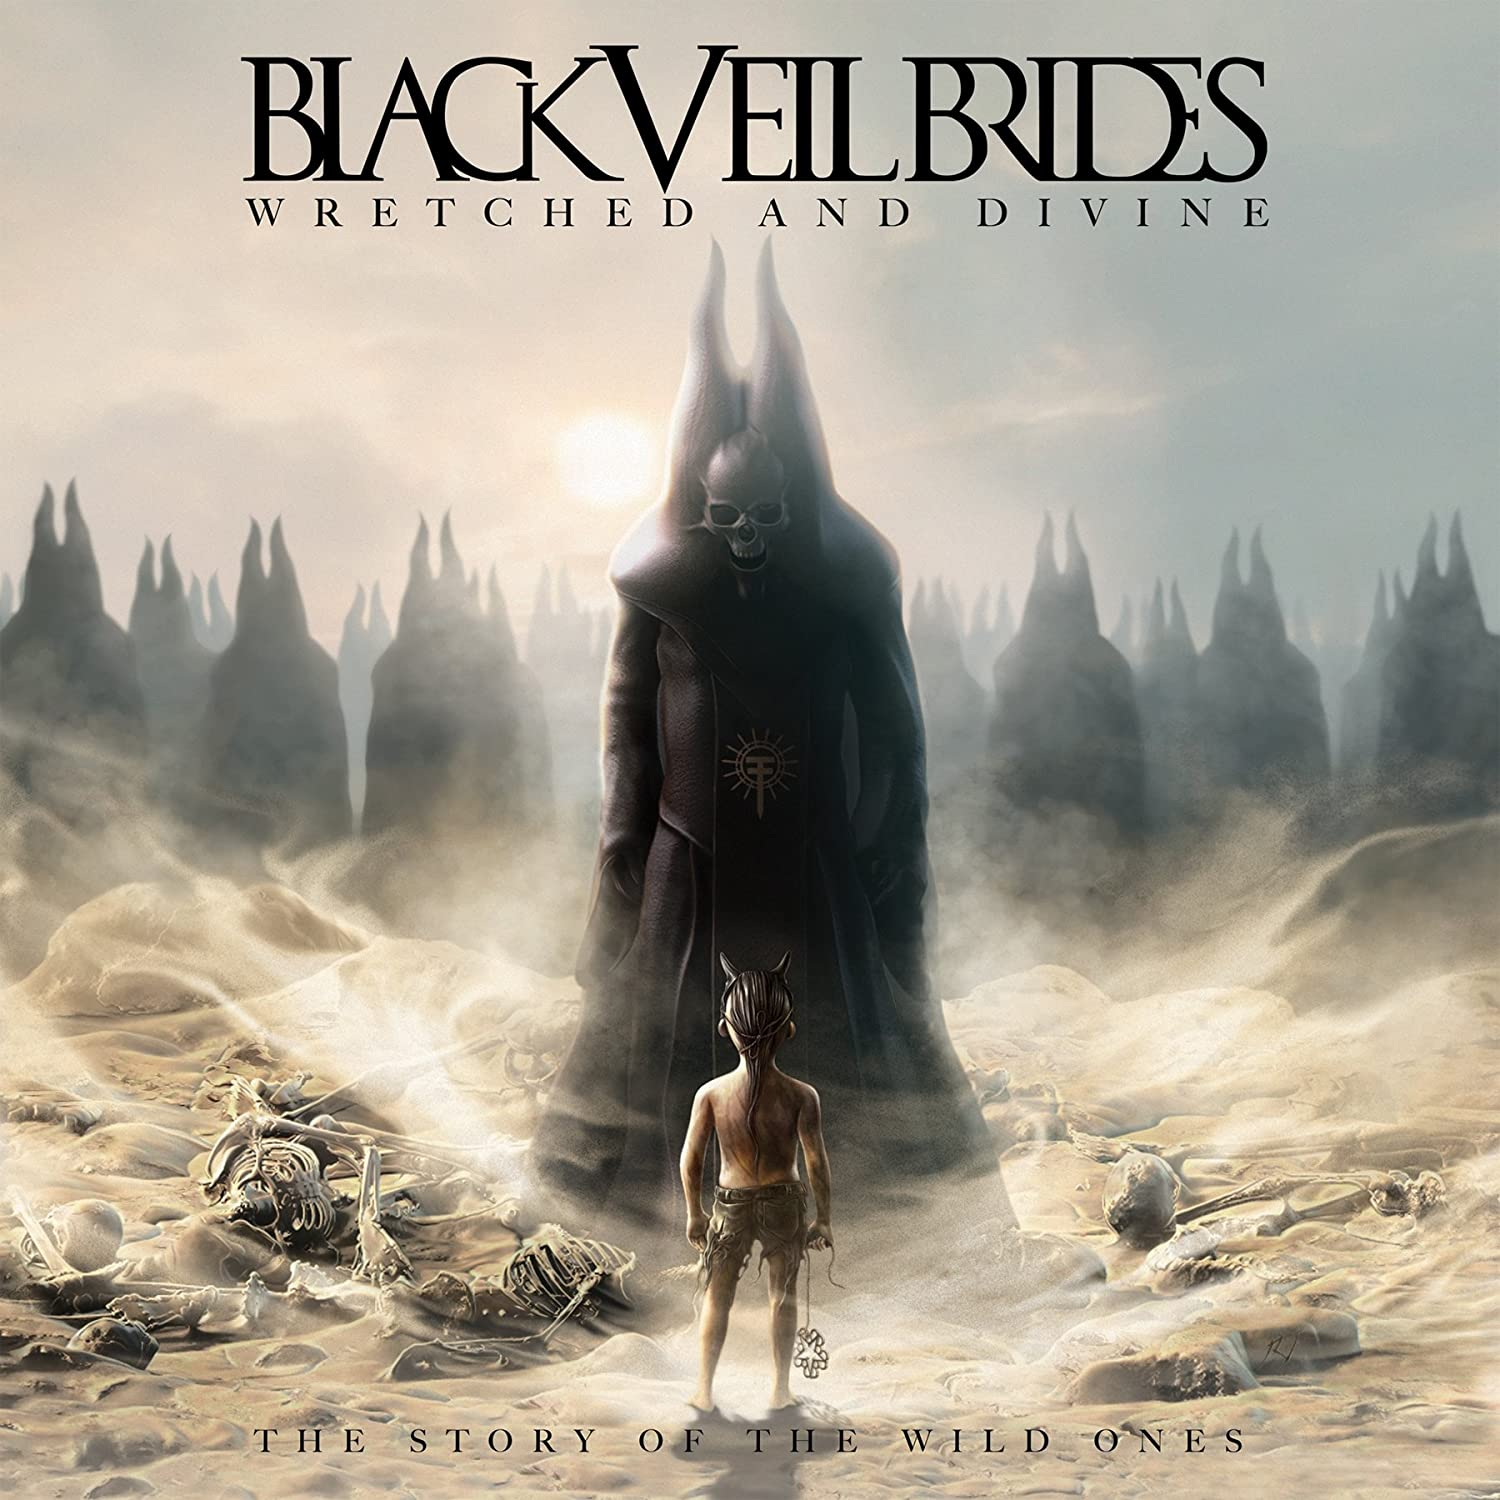 Black Veil Brides | Best Album Art, 2013 AltPress Readers Poll